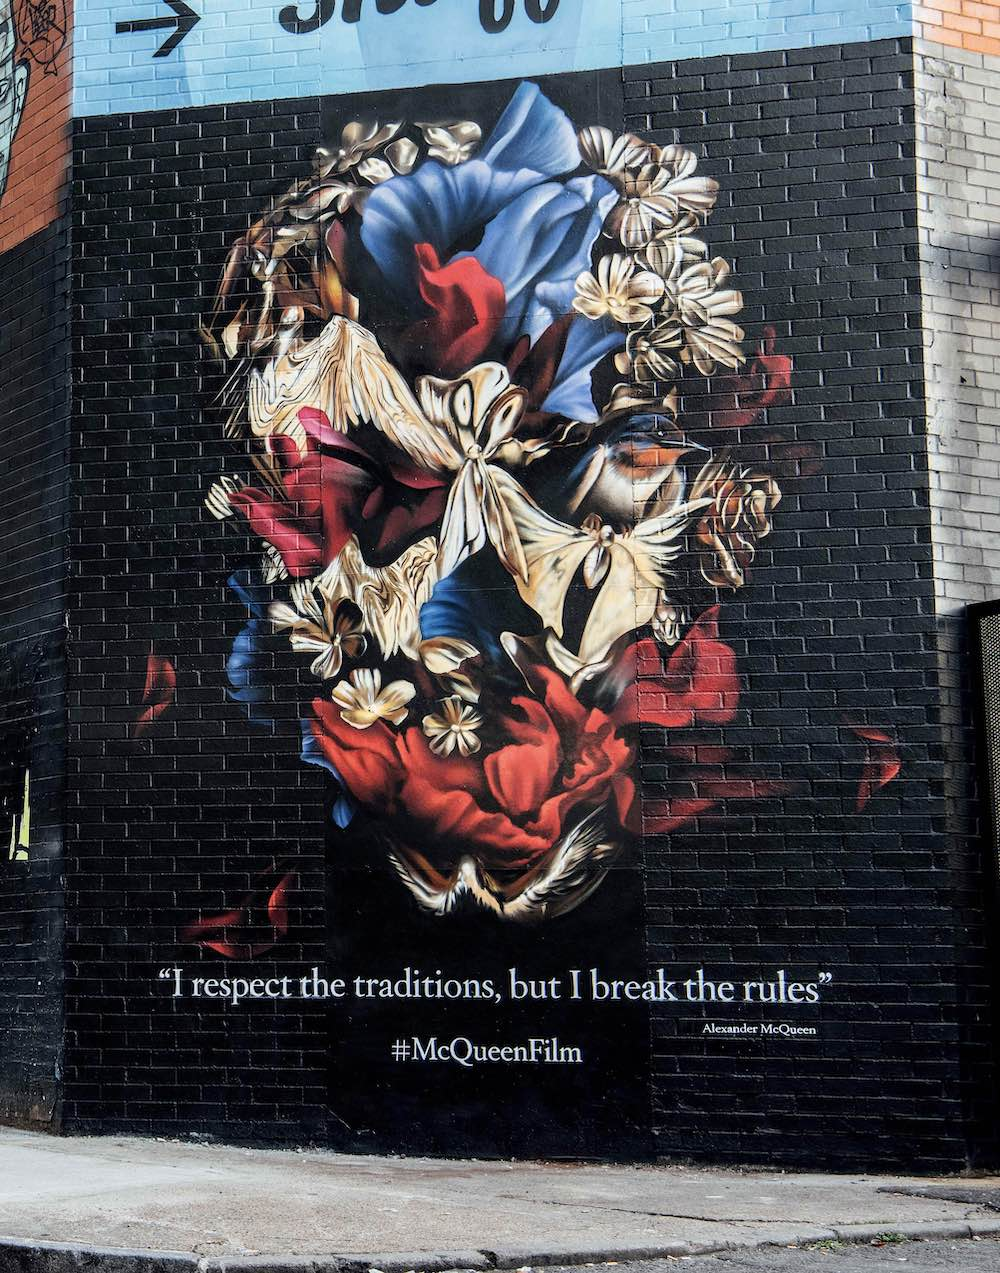 87f0ff380 A commemorative Alexander McQueen mural created by Graffiti Life's Sophie  Meseg marking the release of the documentary McQueen (2018)